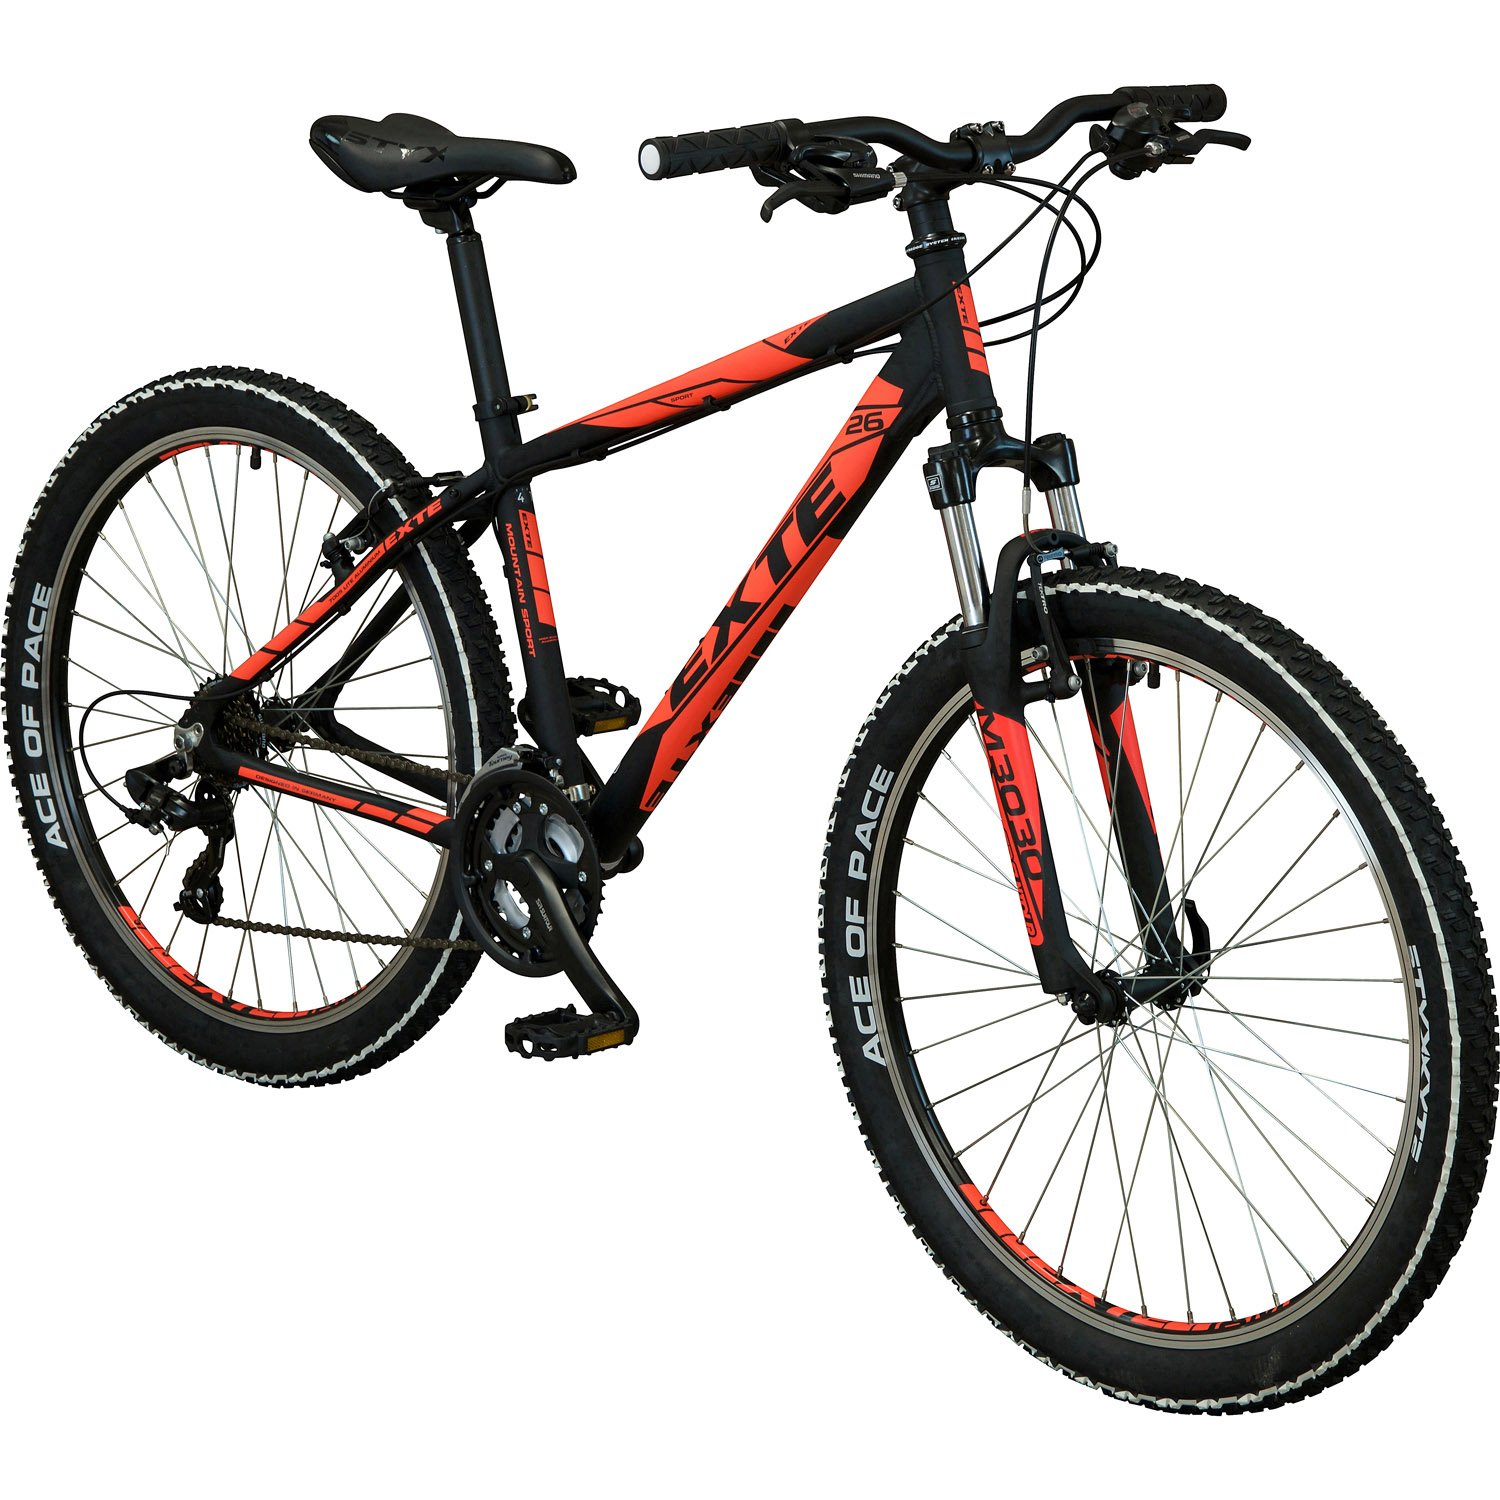 exte helium mountainbike 26 zoll schwarz neonorange 37. Black Bedroom Furniture Sets. Home Design Ideas